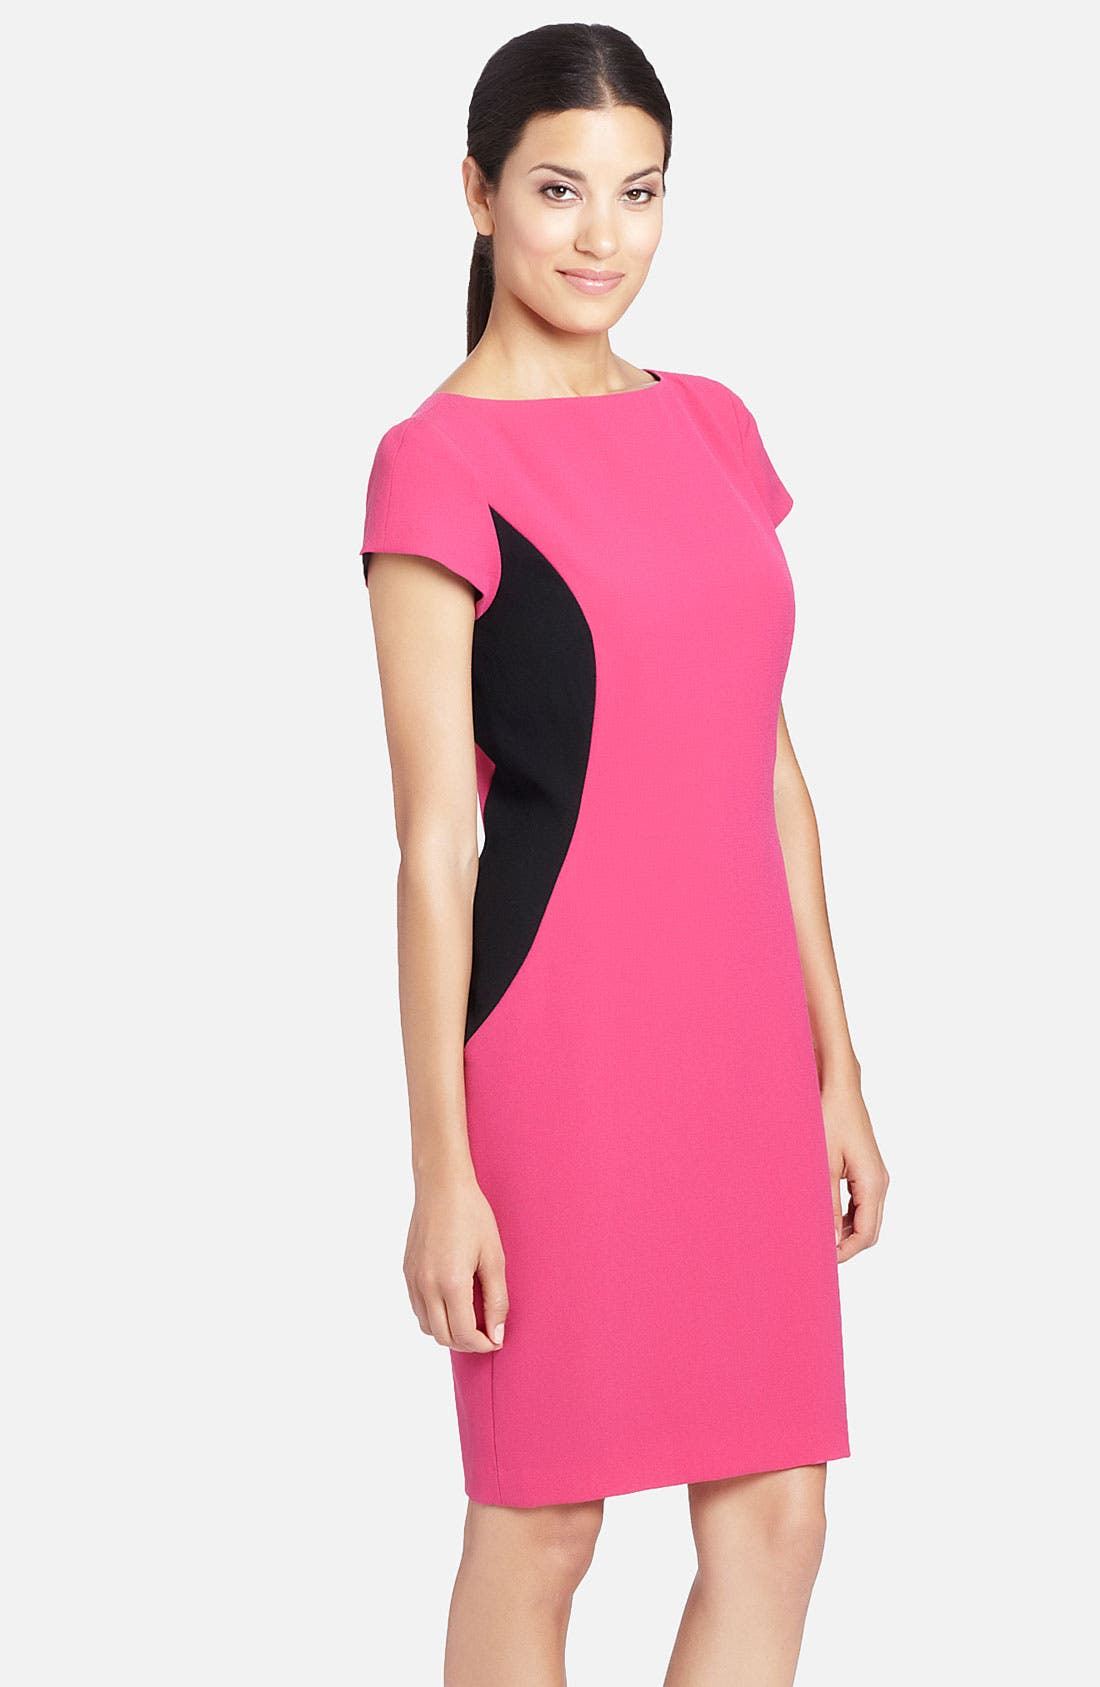 Alternate Image 1 Selected - Cynthia Steffe 'Lida' Contrast Side Panel Crepe Sheath Dress